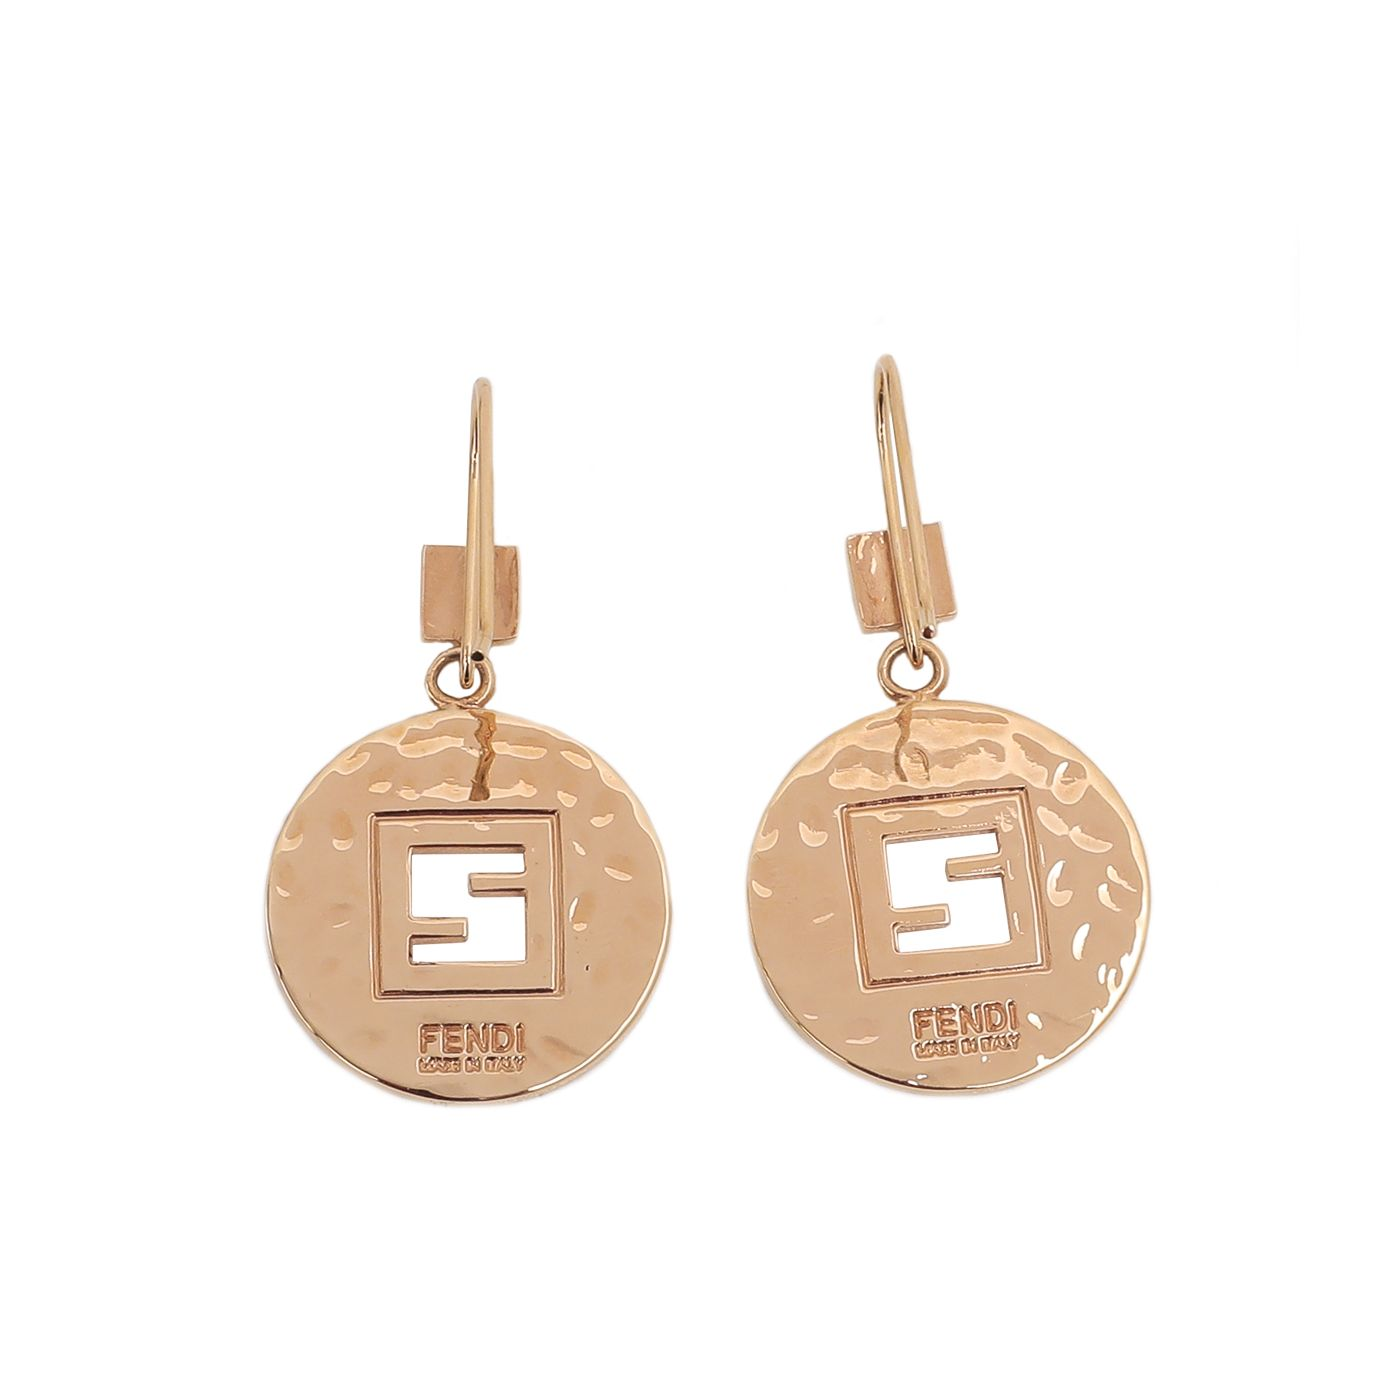 Fendi Gold Tone Circular Cut Out Logo Drop Hook Earring